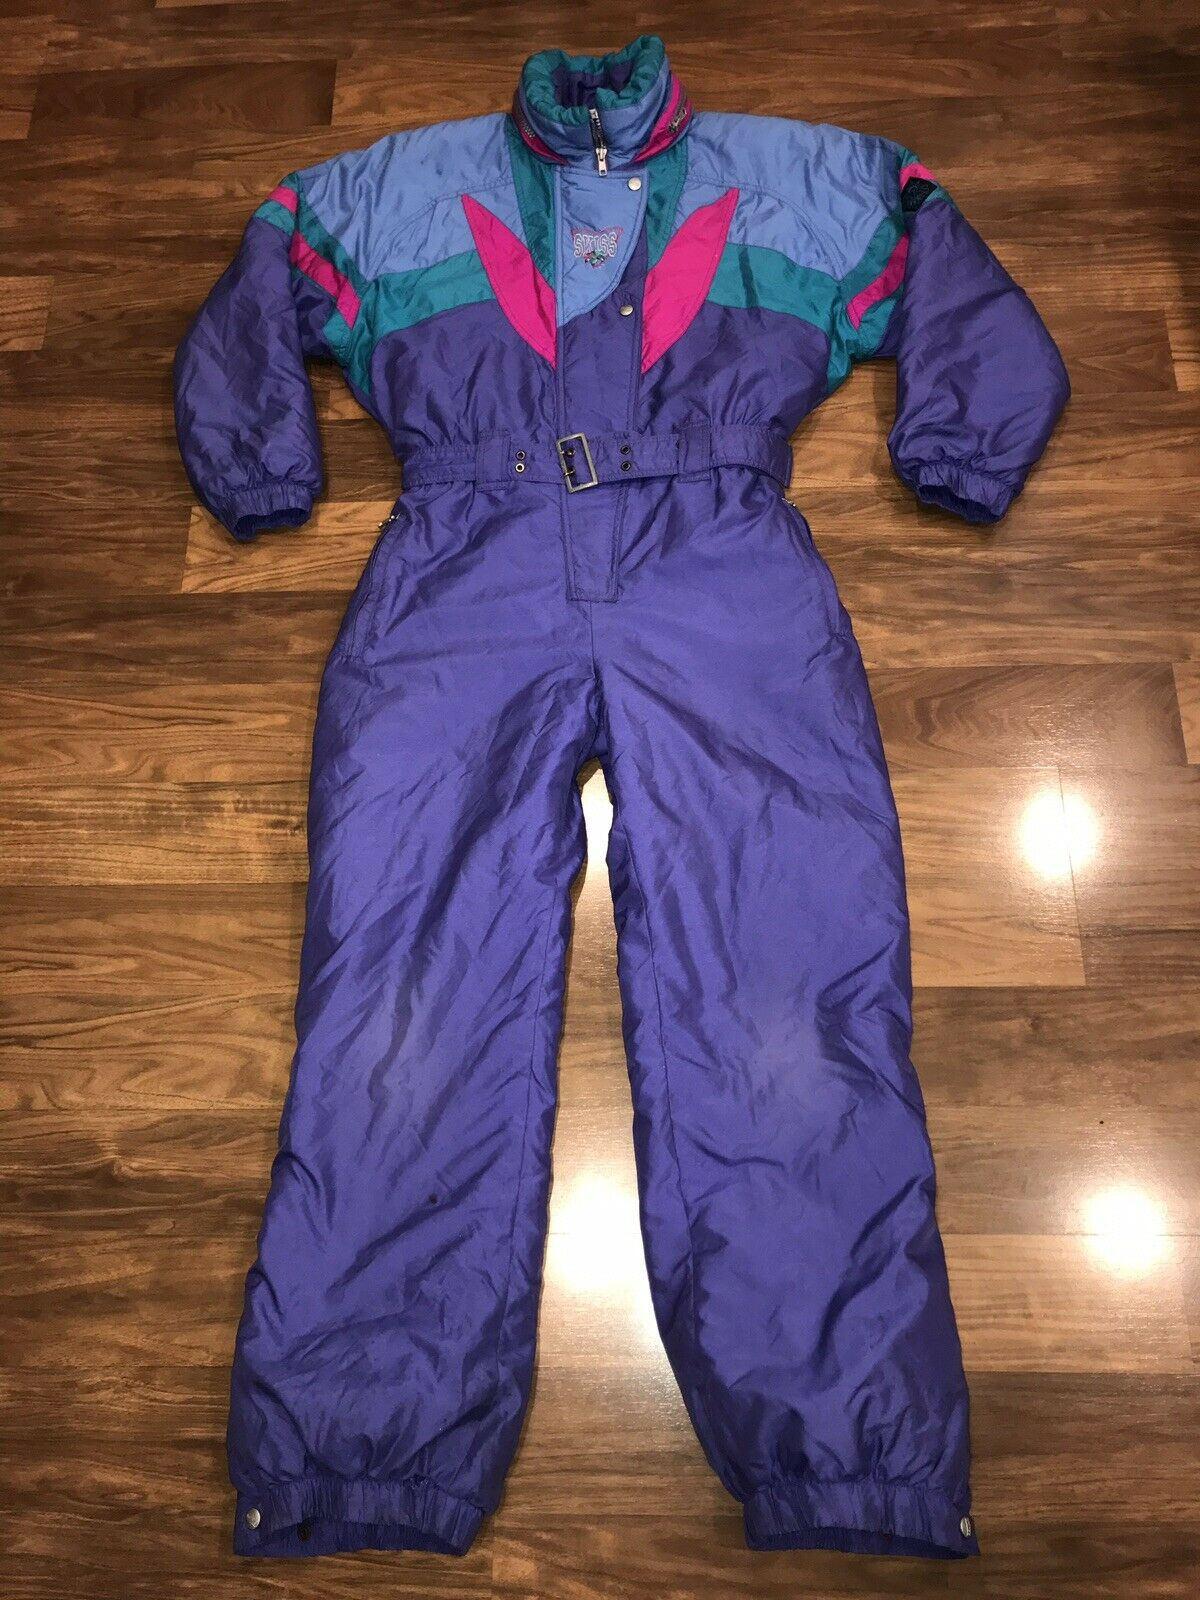 Vtg 80s 90s Womens Large SKISS One Piece  SKI SUIT Snow Bib Snowsuit Gaper Party  first time reply